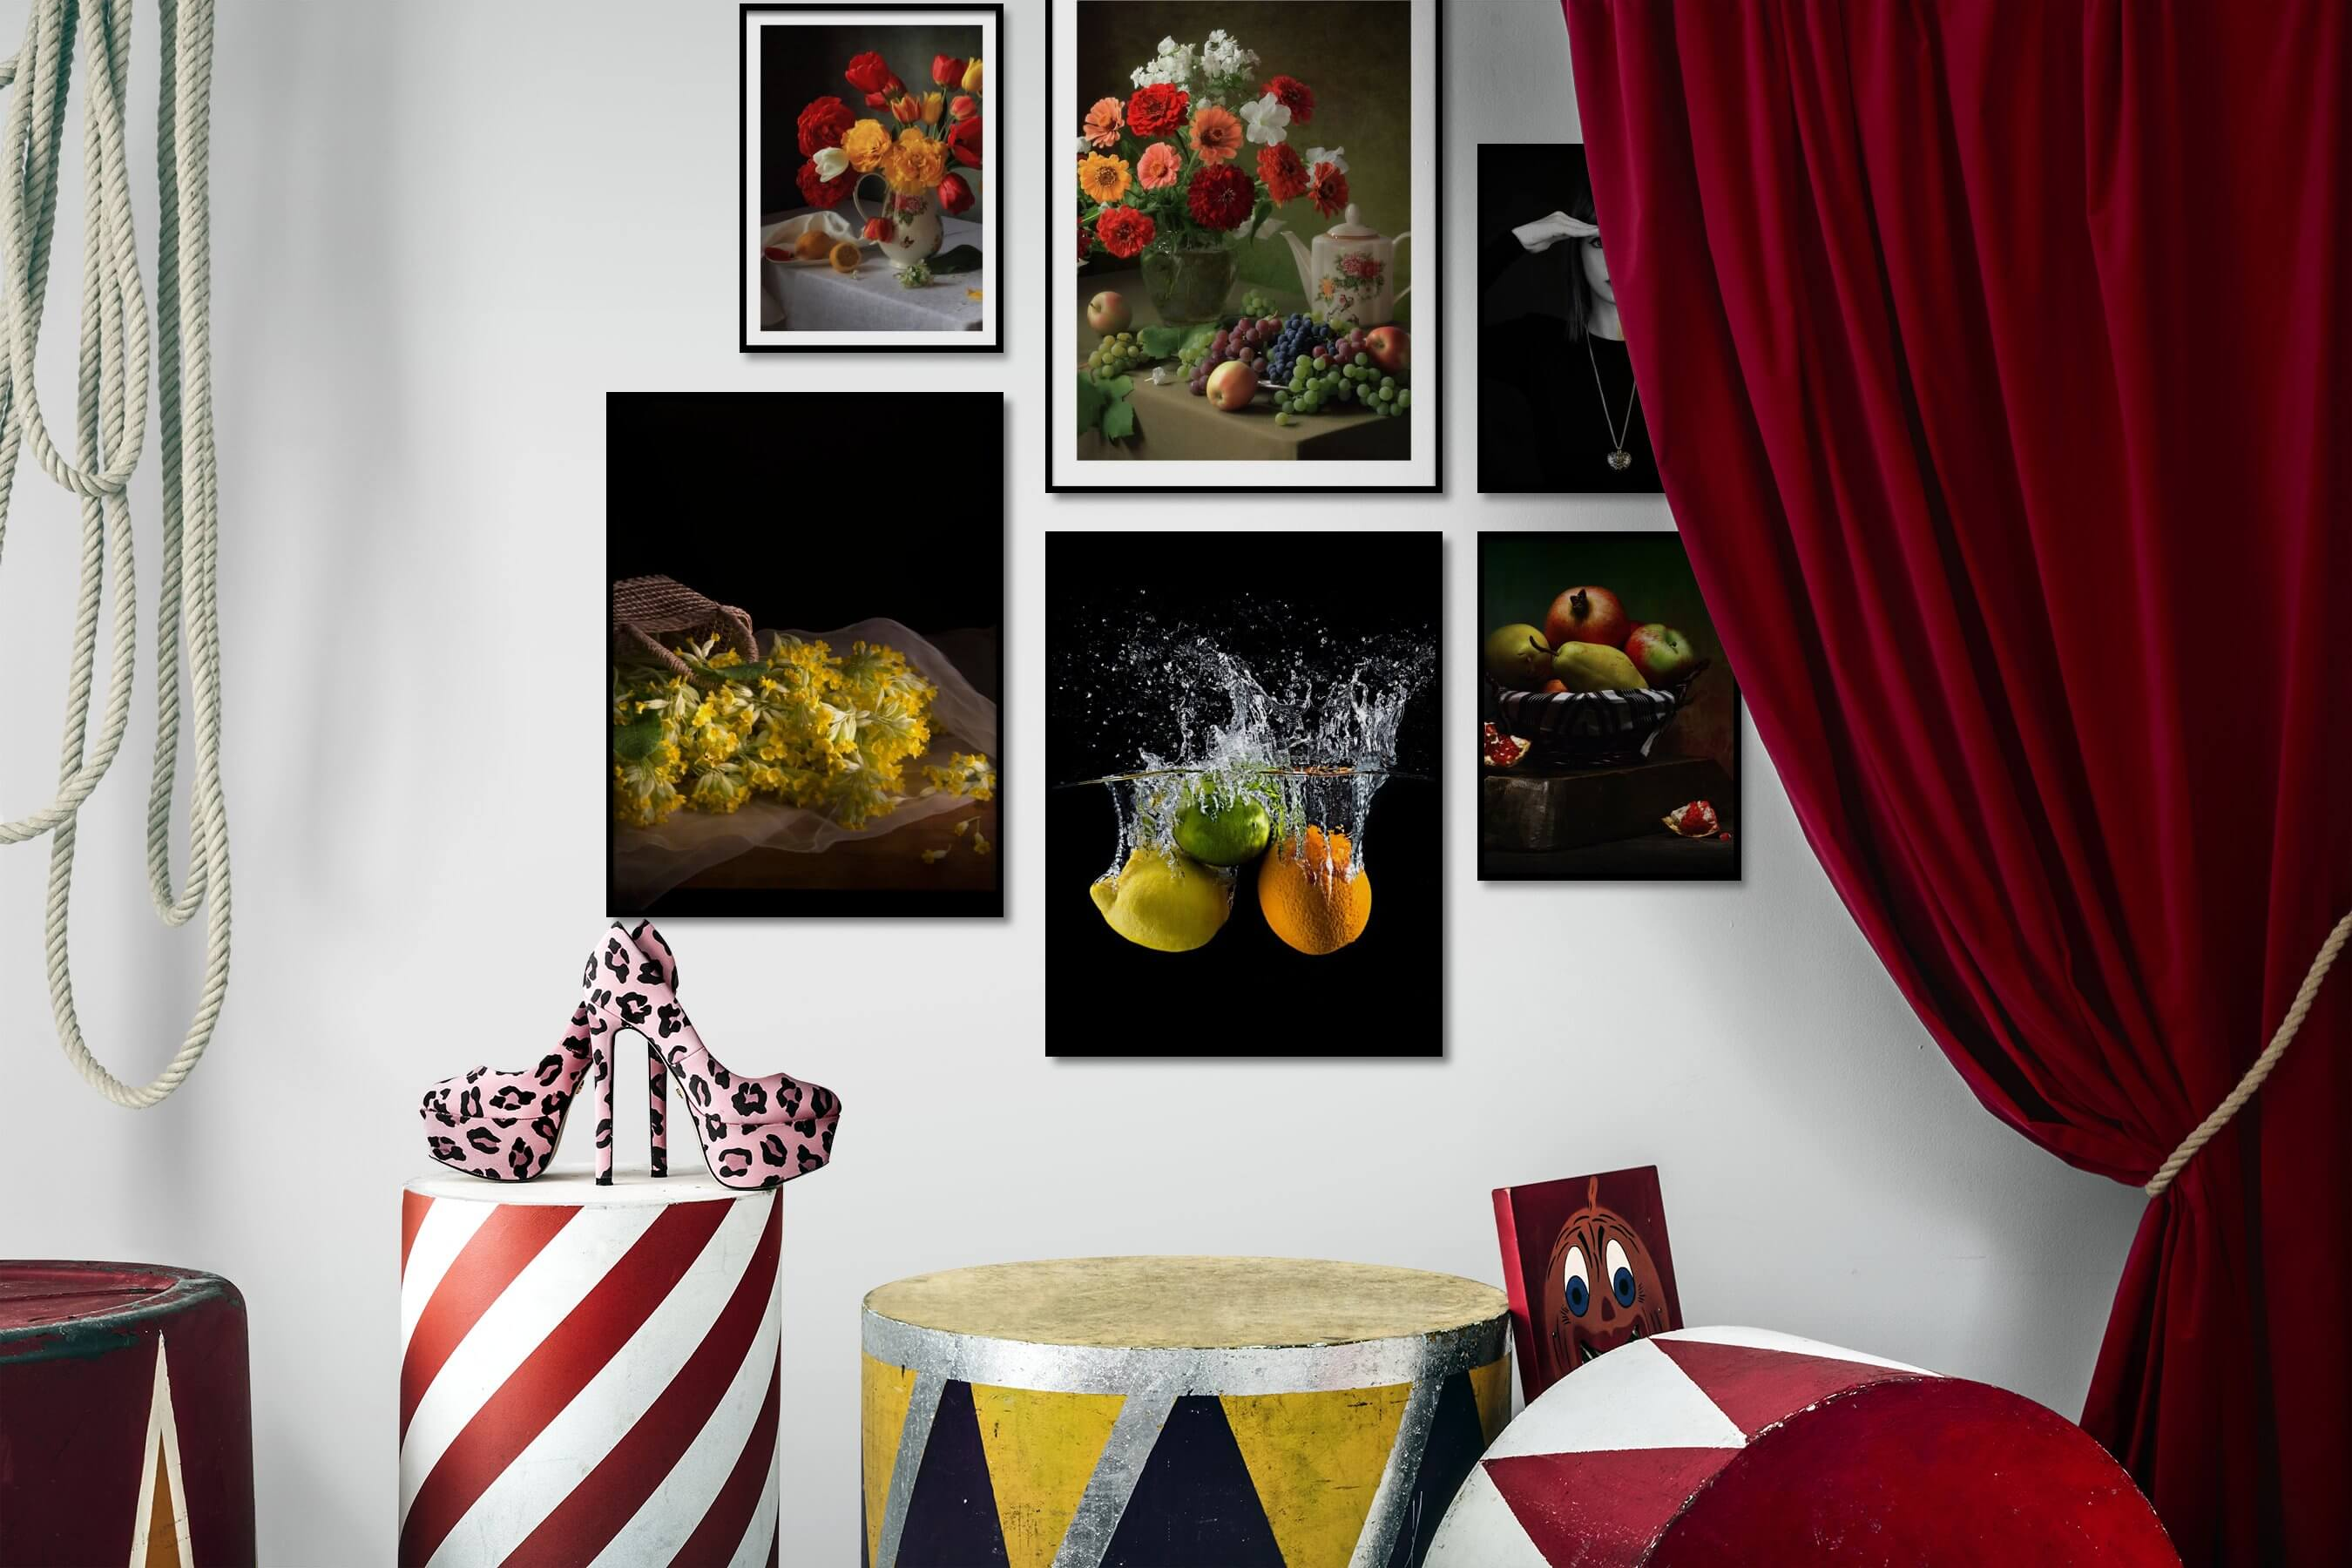 Gallery wall idea with six framed pictures arranged on a wall depicting Flowers & Plants, Vintage, Dark Tones, Beach & Water, and Fashion & Beauty